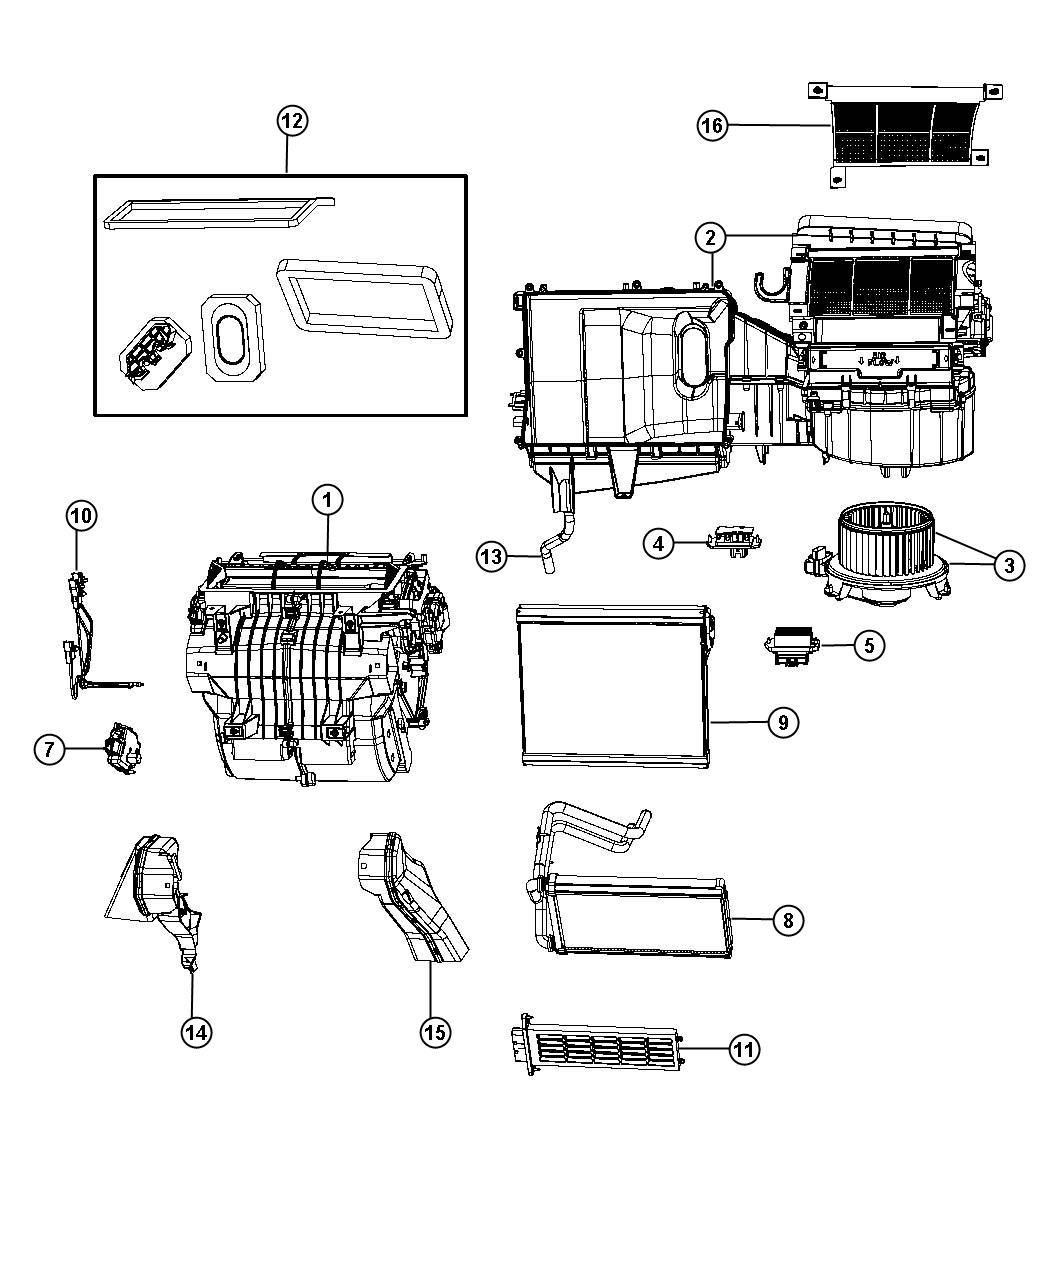 service manual  2008 dodge avenger heater motor replace